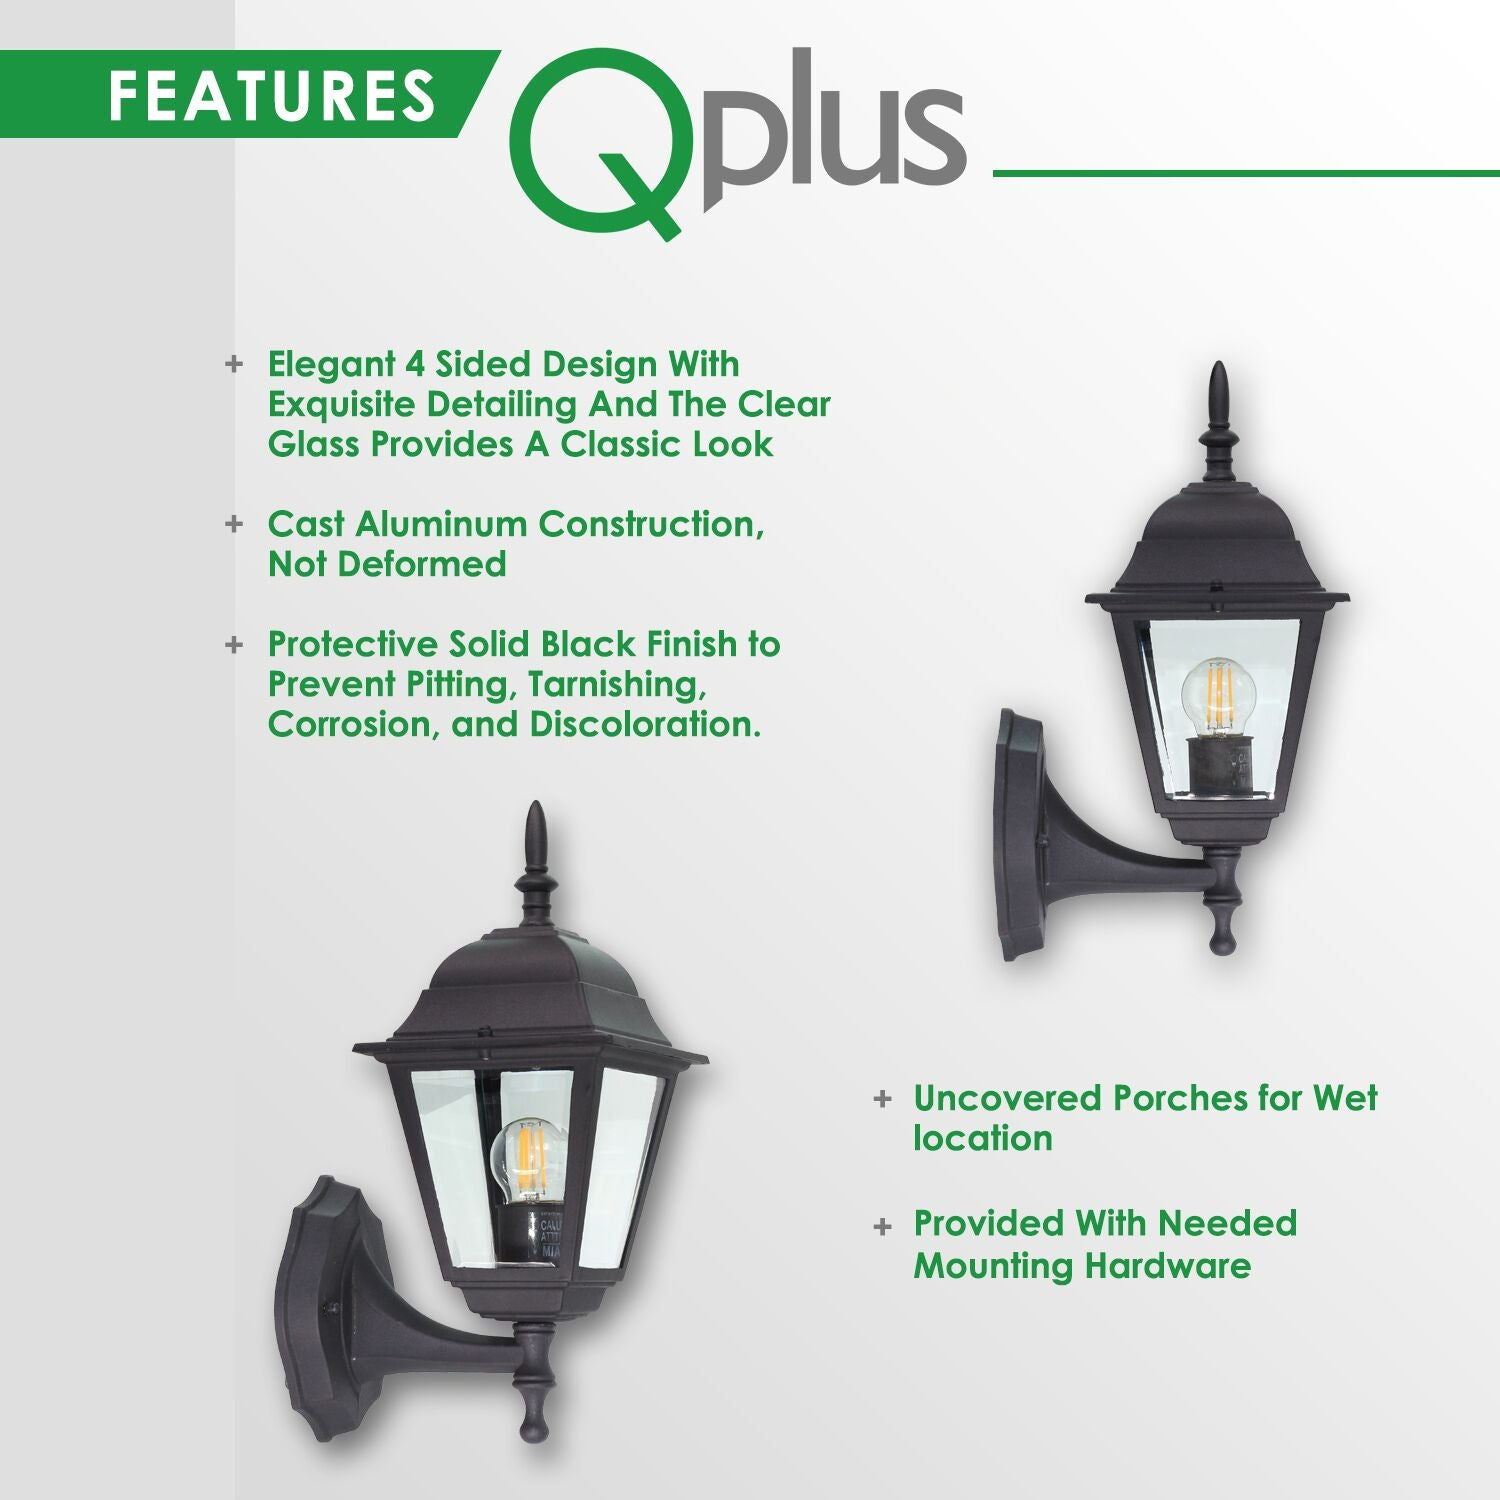 QPlus Porch Wall Lights/Sconce/Wall Lanterns Classic With Clear Glass Panels - Black/Bronze Finish